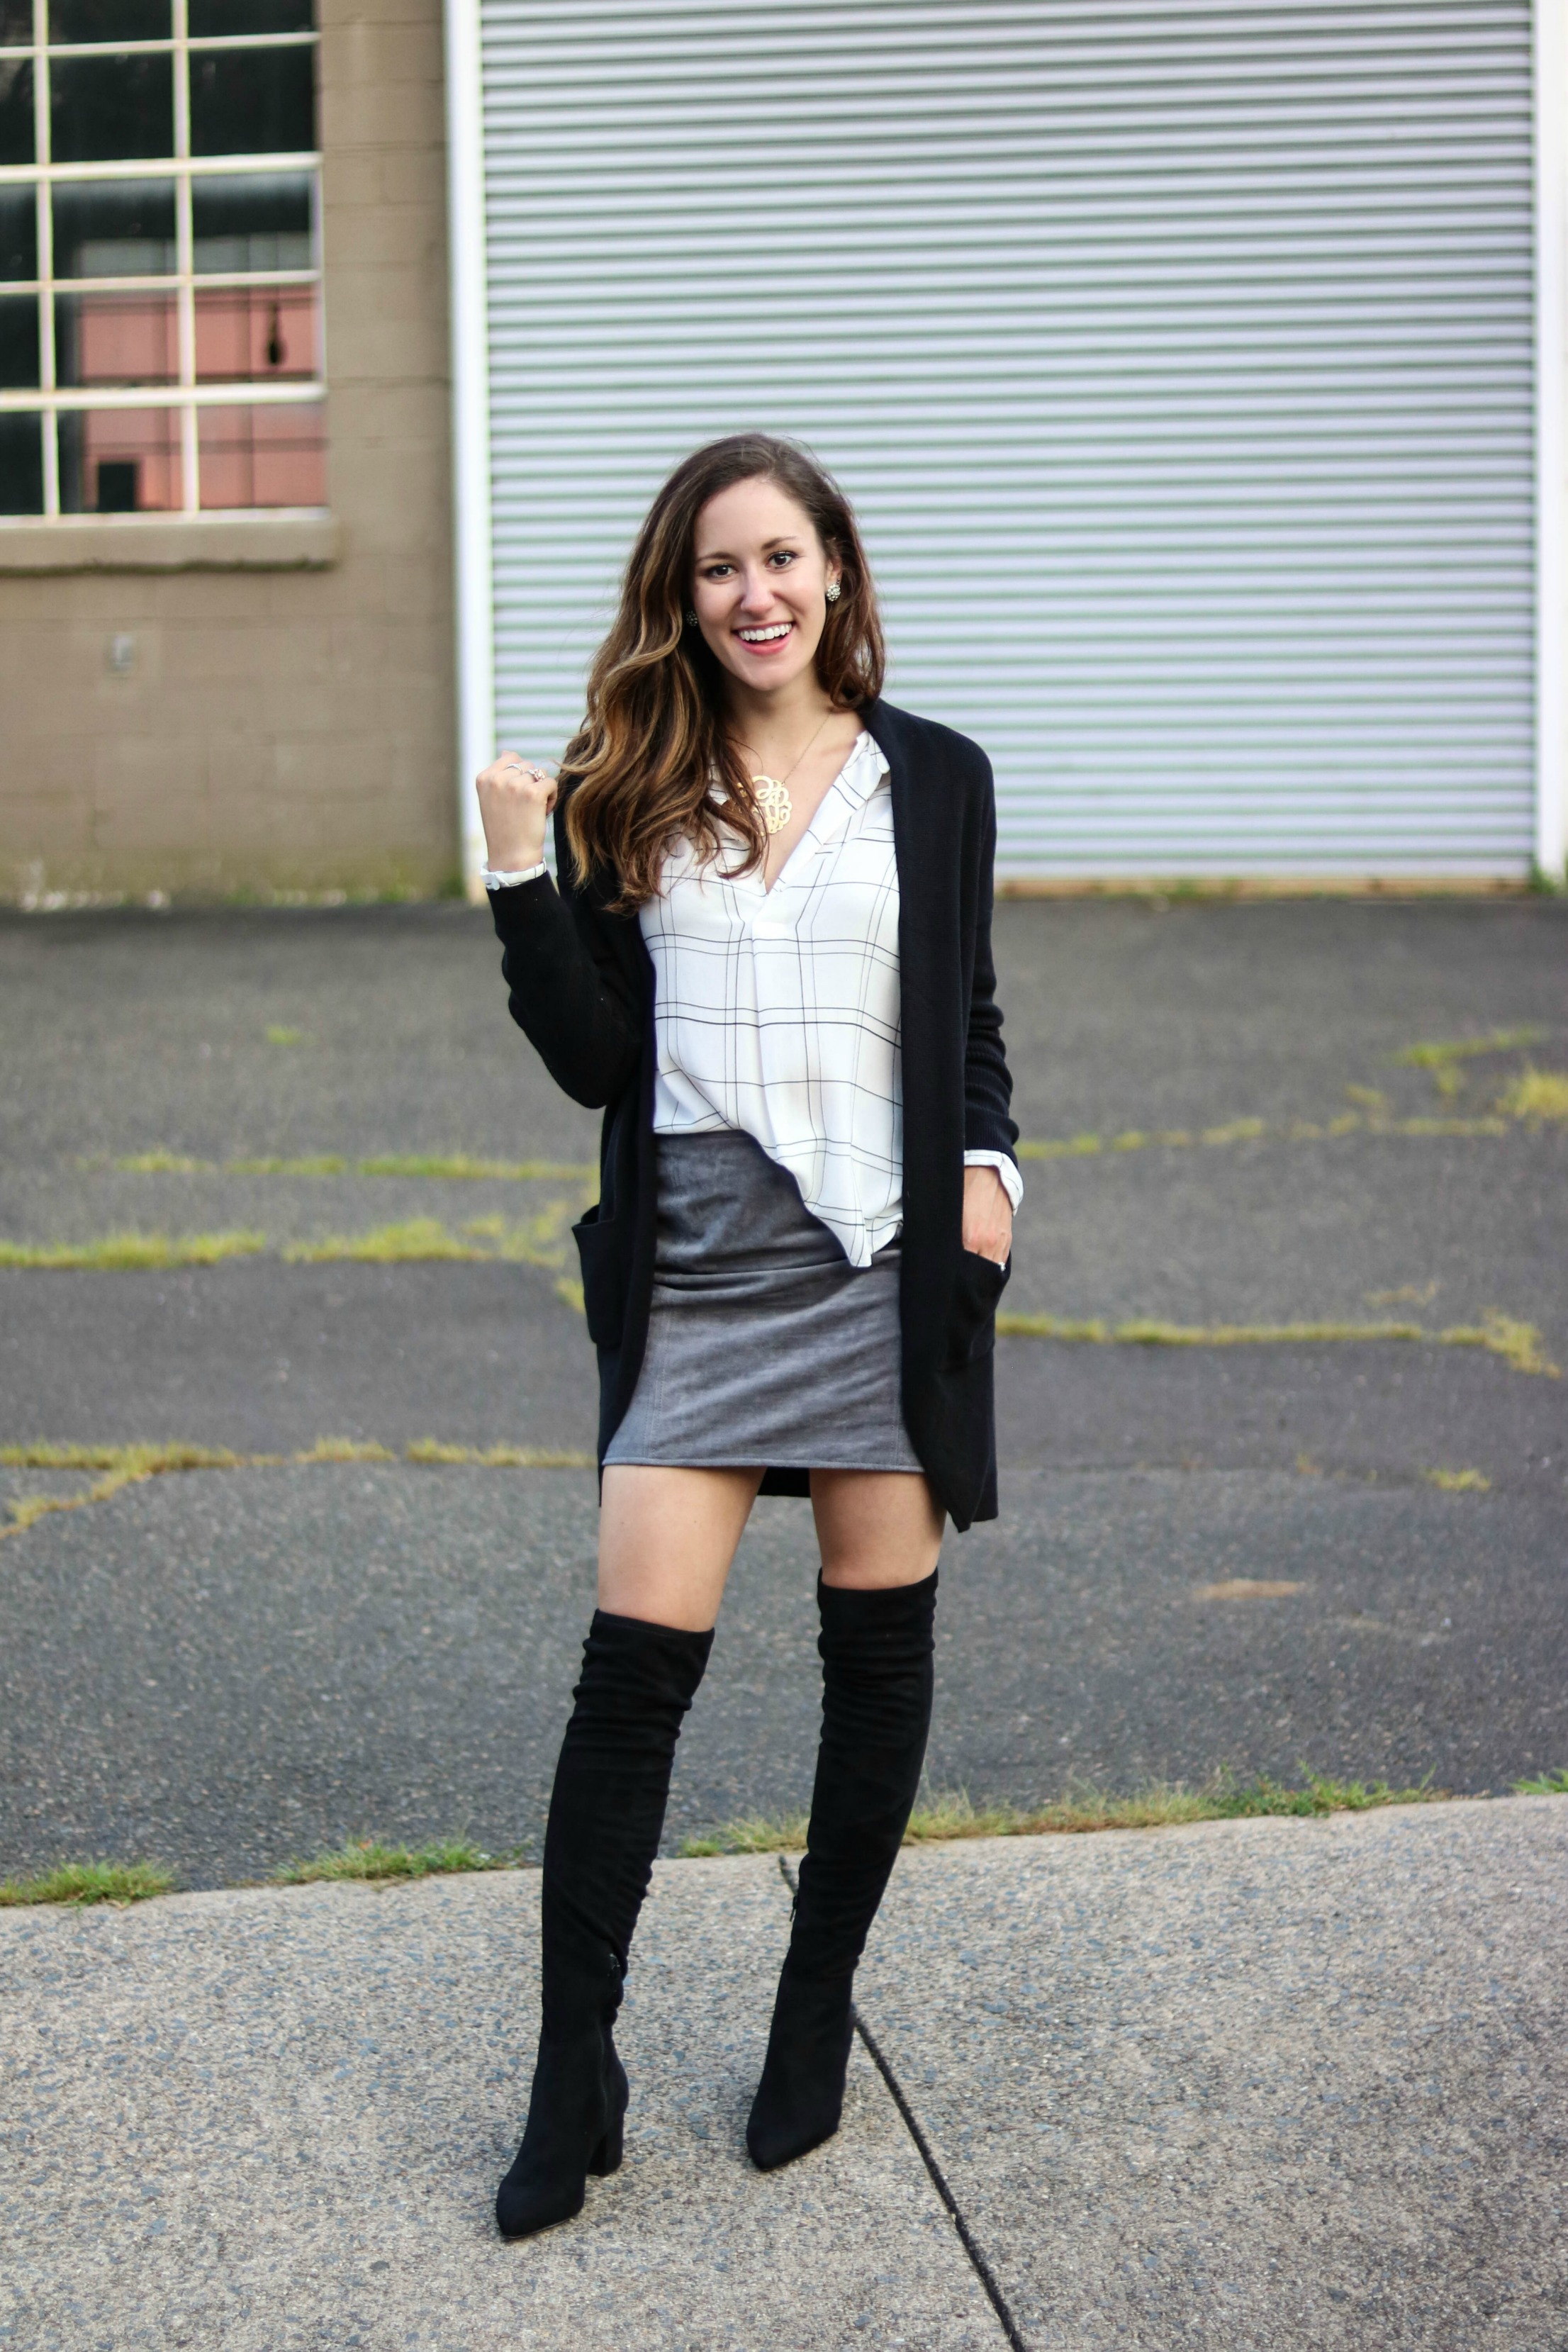 The Nordstrom Anniversary Sale 2018 has BEGUN! Come shop with Philadelphia style blogger, Erica of Coming Up Roses, as she shares what she's picked up so far and 9 fully styled looks with NSale pieces! SHOP NOW before the best stuff sells out!